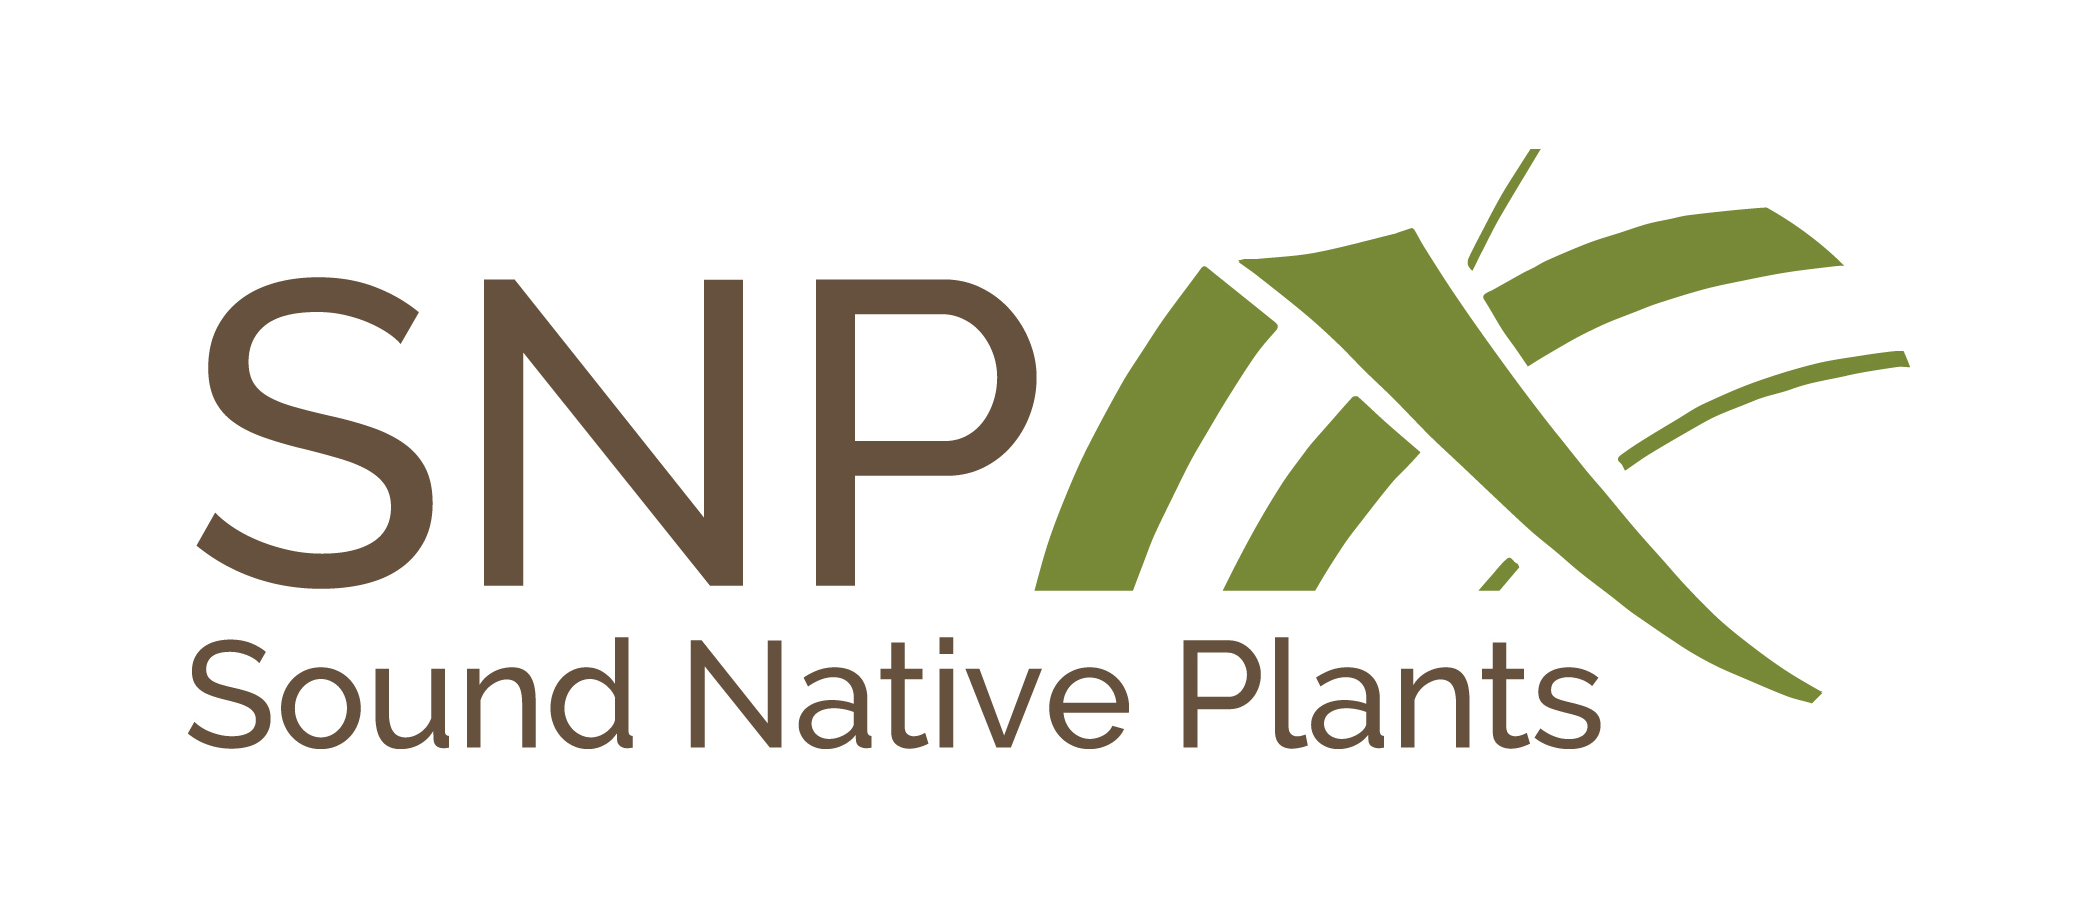 Sound Native Plants Logo Olympia, WA